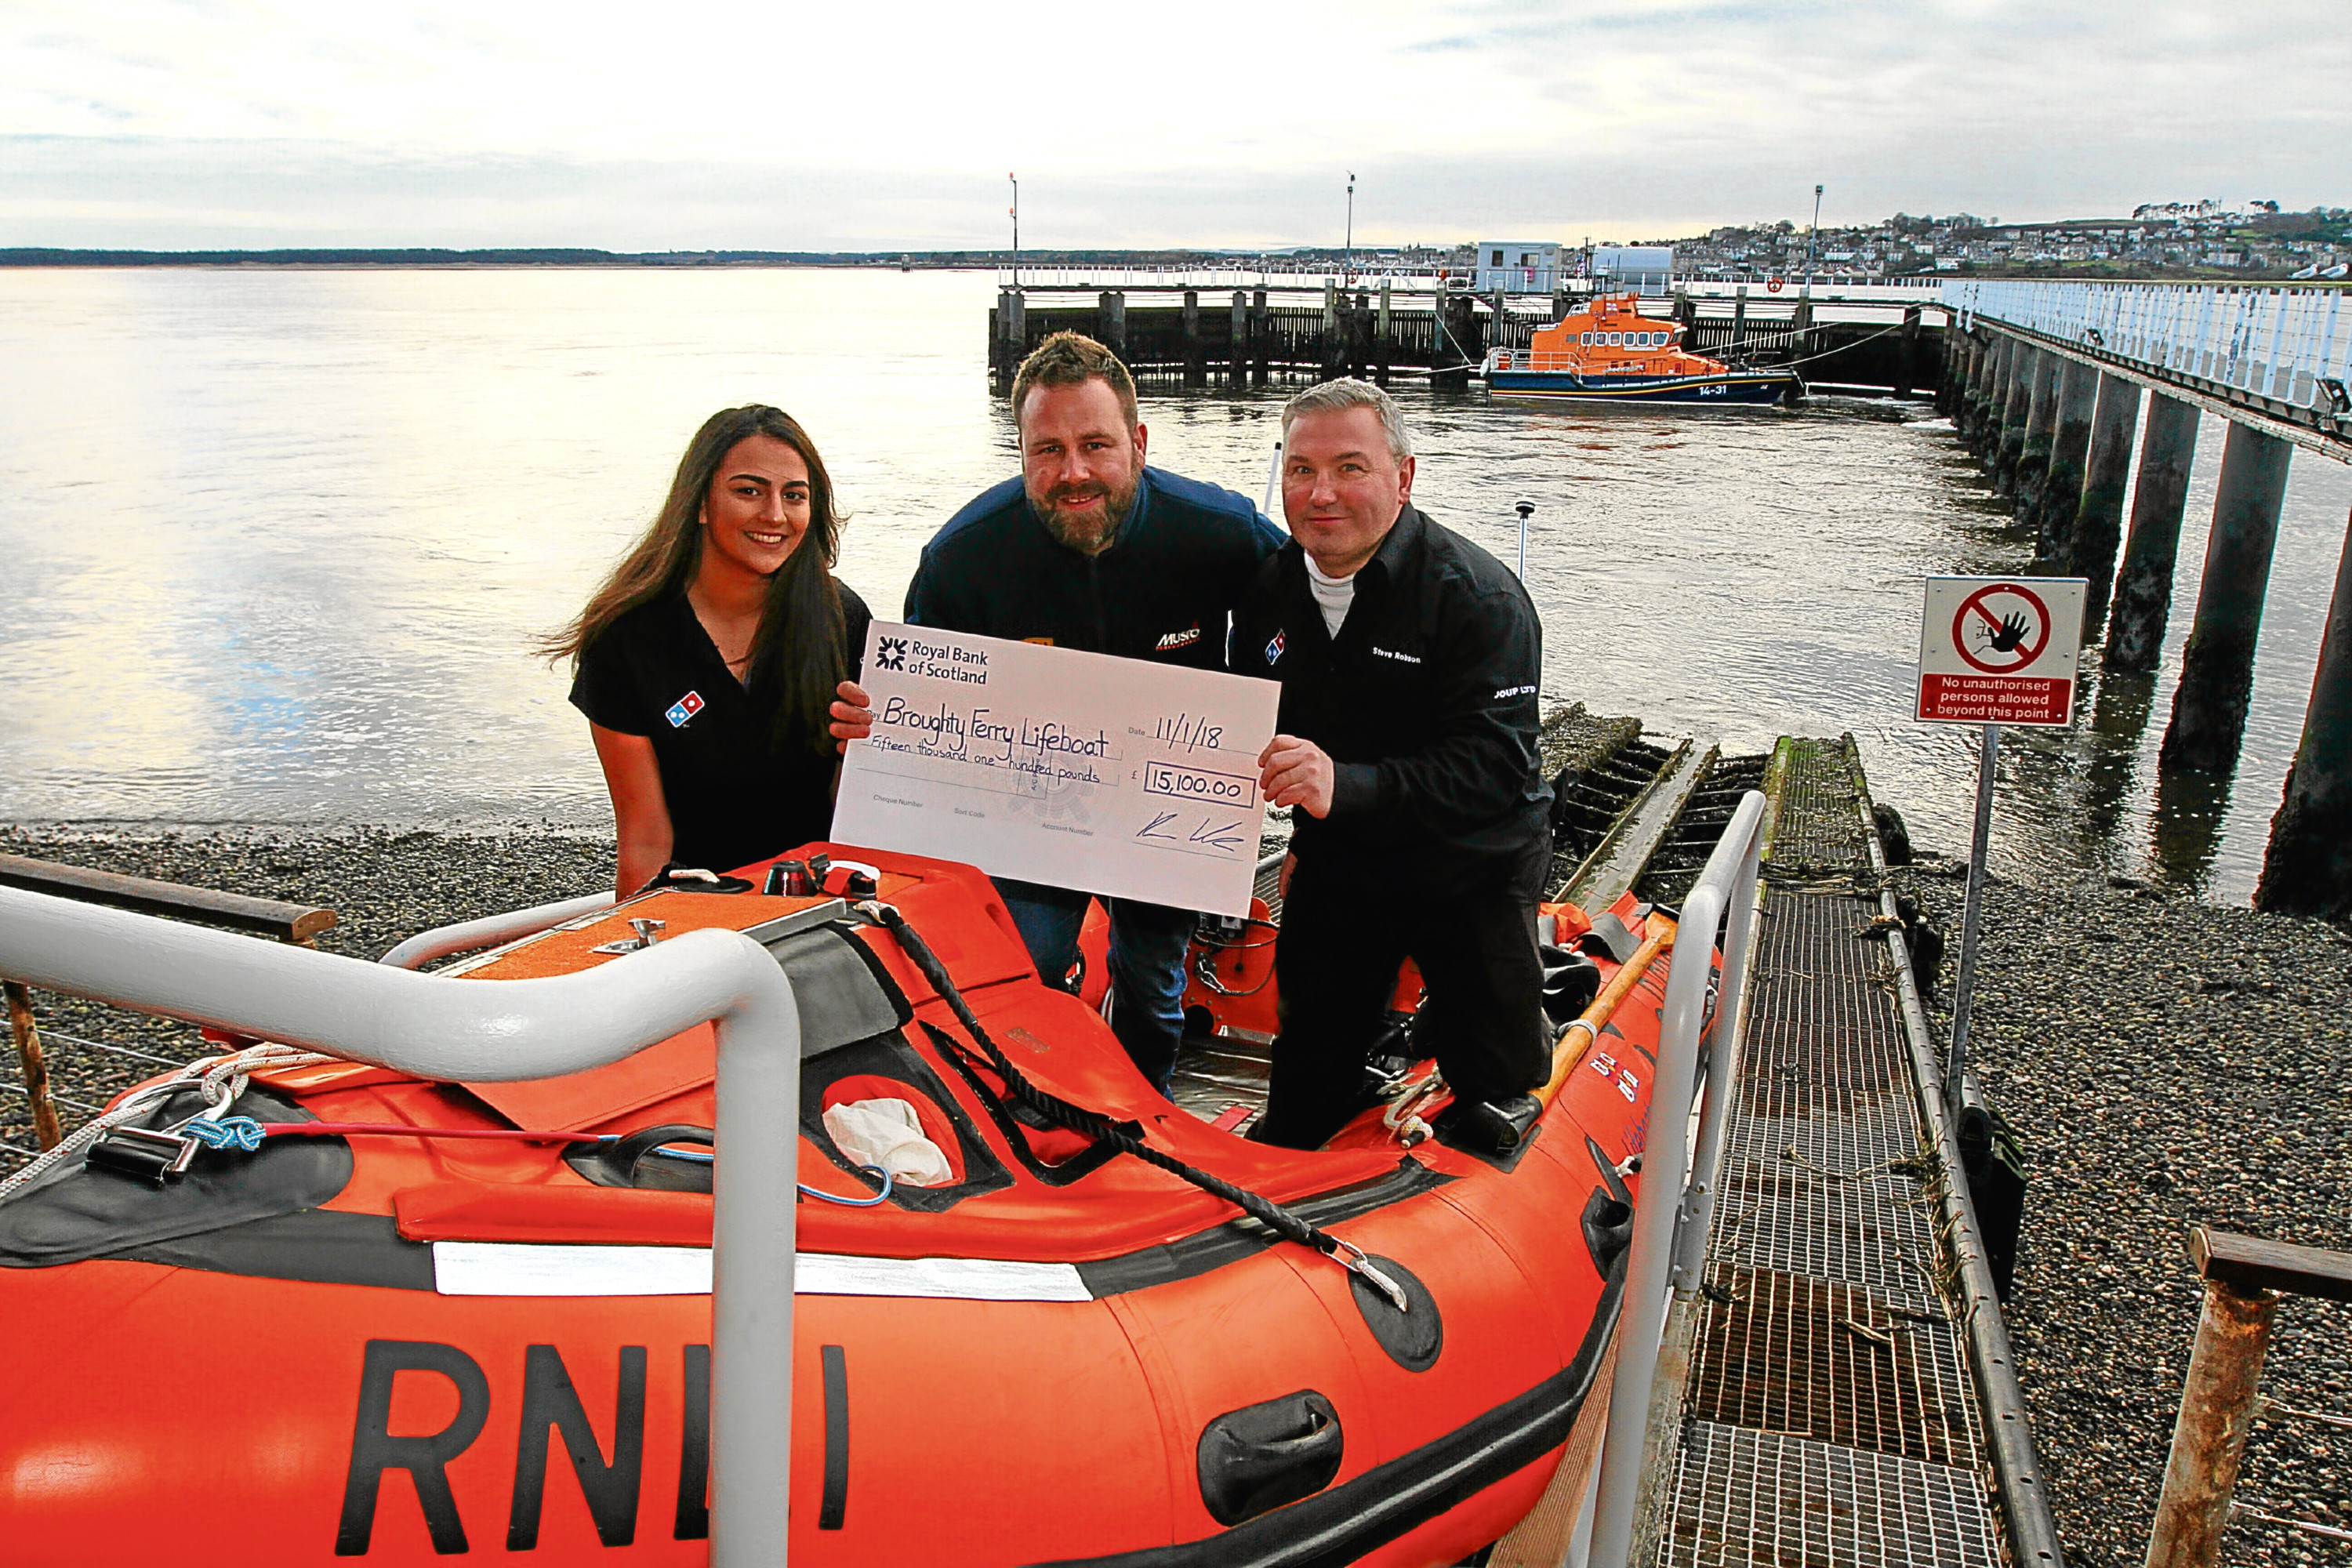 Steve Robson and Yasmin Thoms, from Domino's, presenting the cheque for £15,100 to Kenny Watson of the RNLI, at the lifeboat house in Broughty Ferry